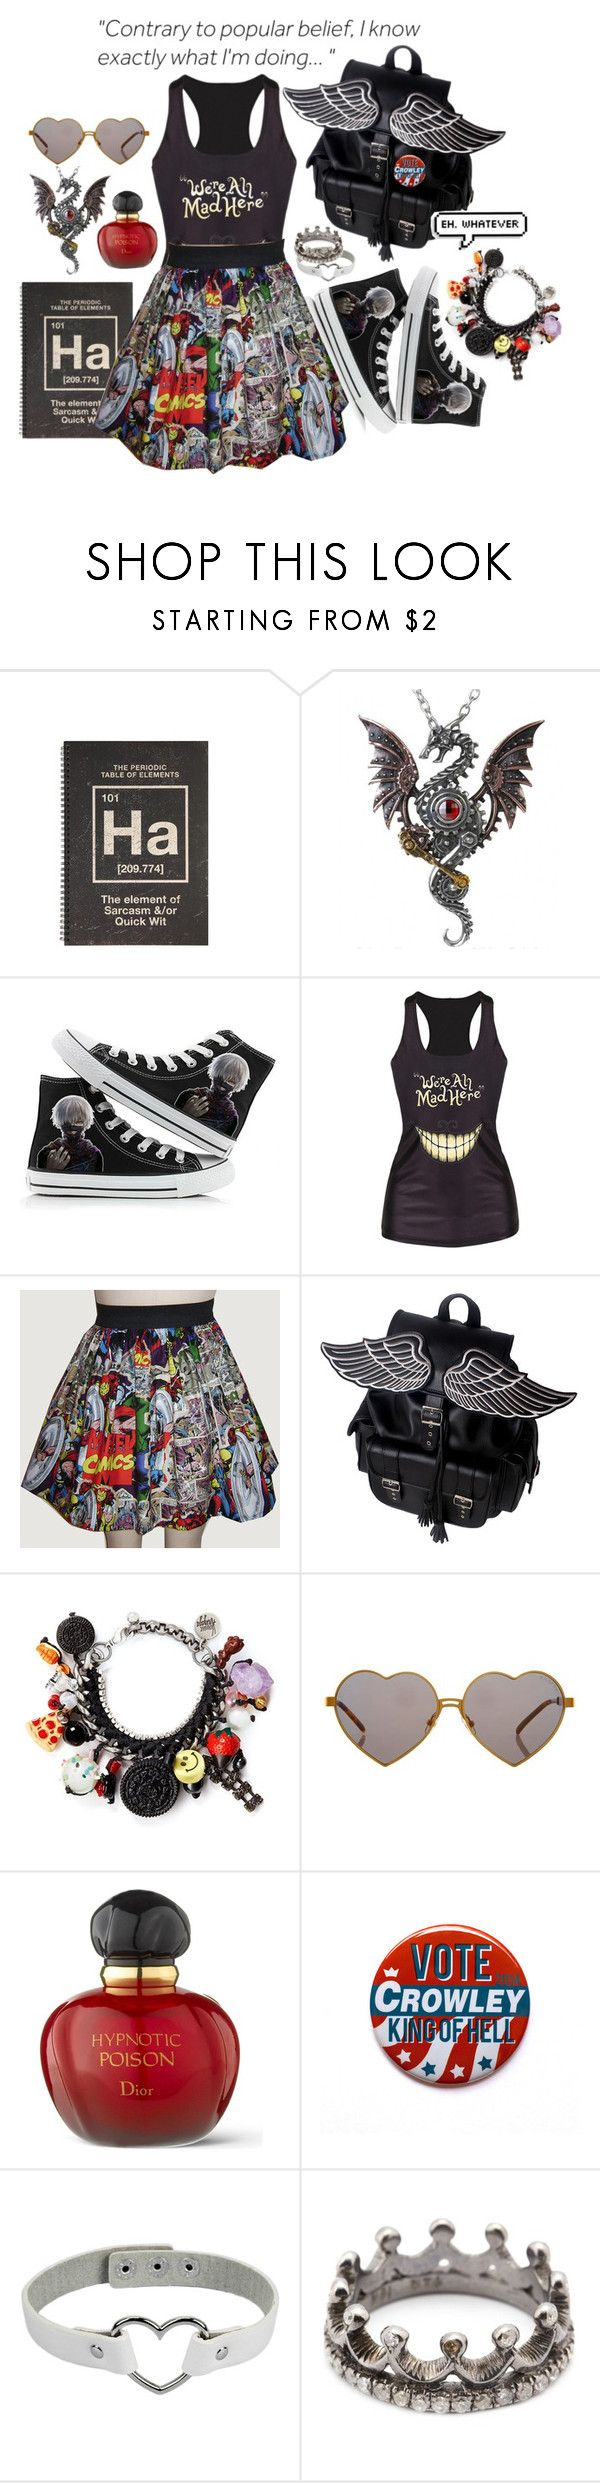 """Define ""Nerd""- Part 2"" by itsjustagame ❤ liked on Polyvore featuring Venessa Arizaga, Wildfox, Christian Dior and Loree Rodkin"